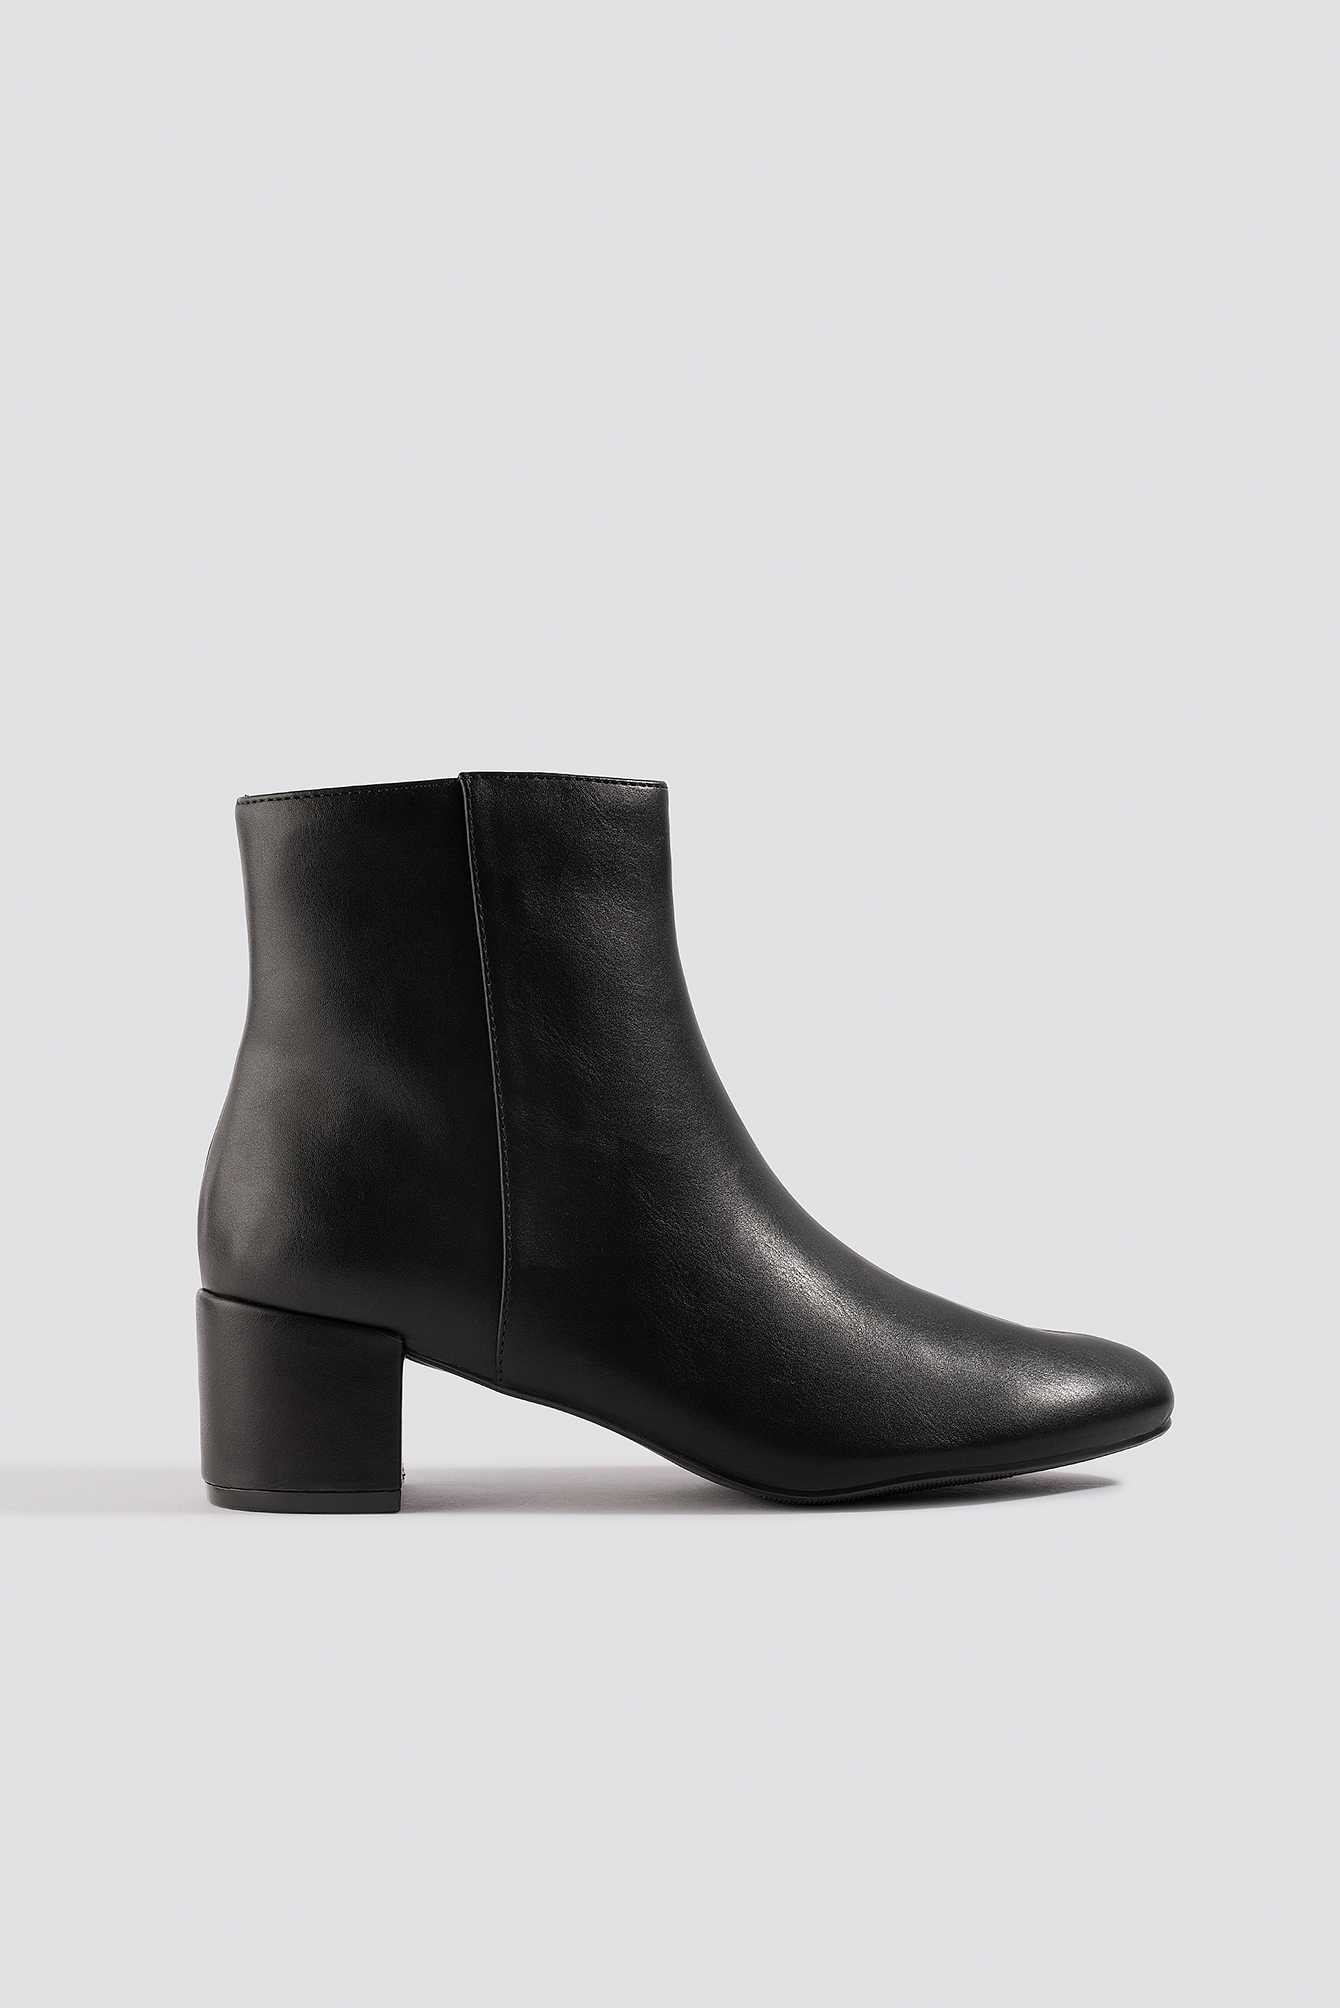 na-kd shoes -  Soft Low Heel Booties - Black